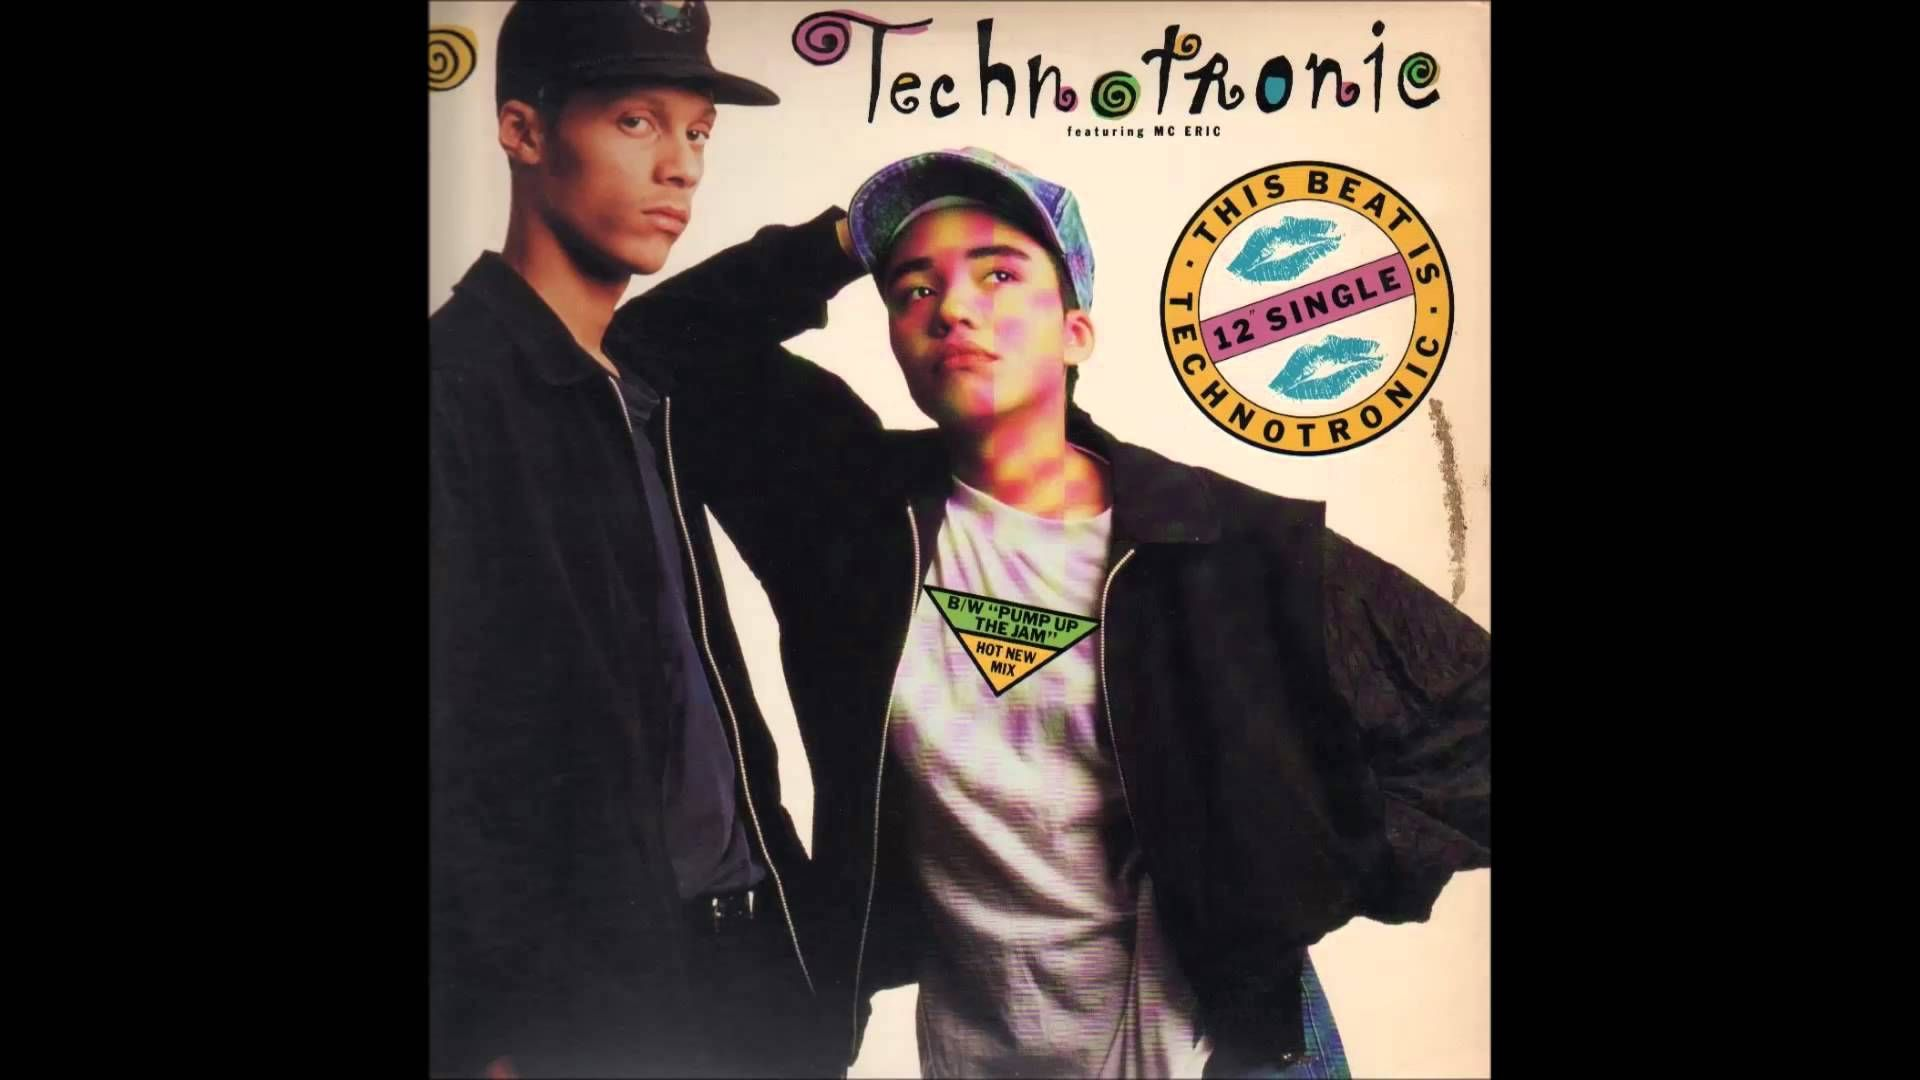 Technotronic - This Beat is Technotronic (Extended) - HD